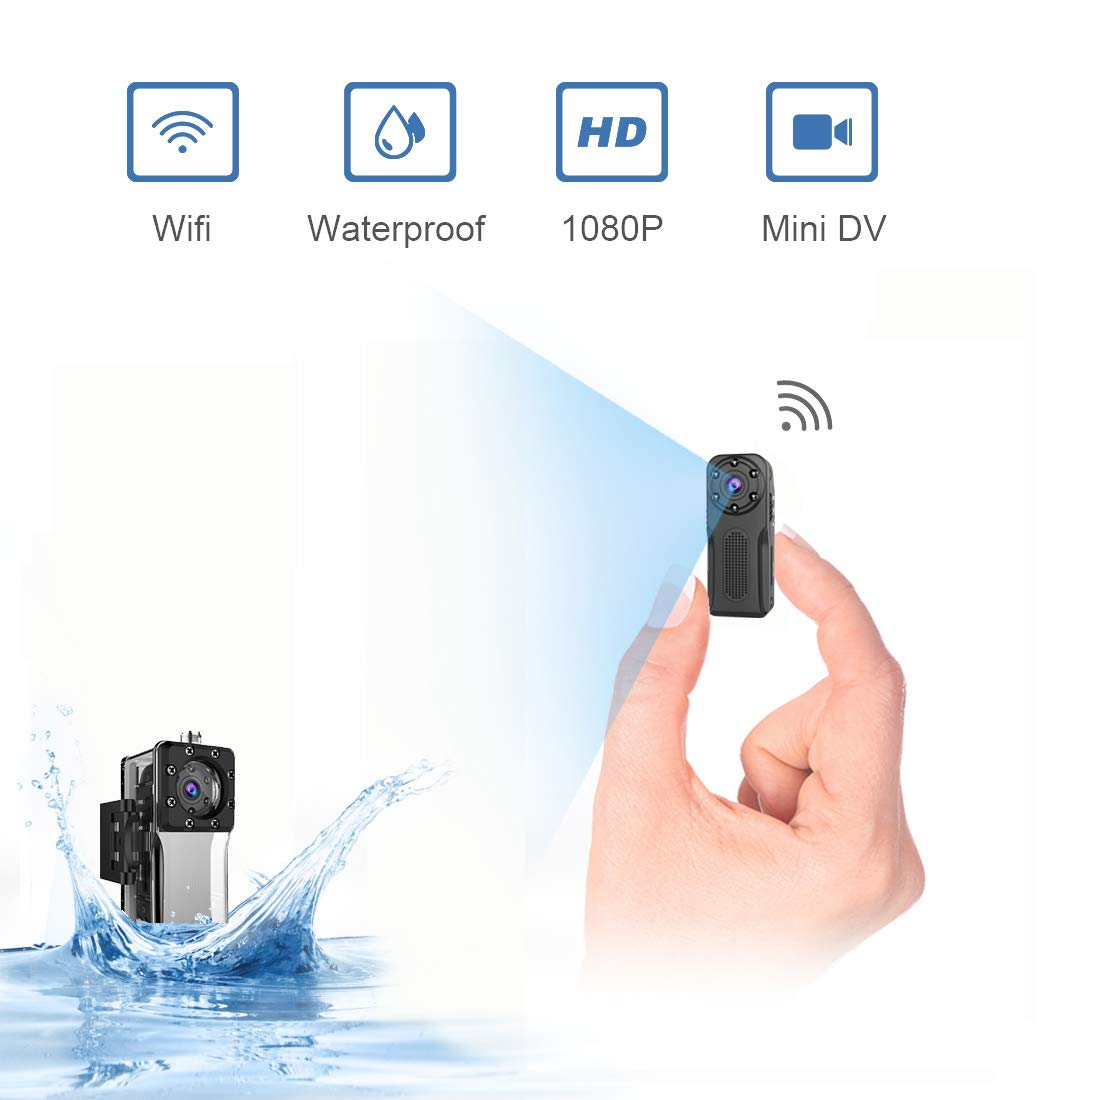 Waterproof Spy Camera Wireless Hidden,ZZCP WiFi Full HD 1080P Portable Mini Nanny Cam with Night Vision and Motion Detection, Perfect Covert Small Security Camera for Indoor and Outdoor